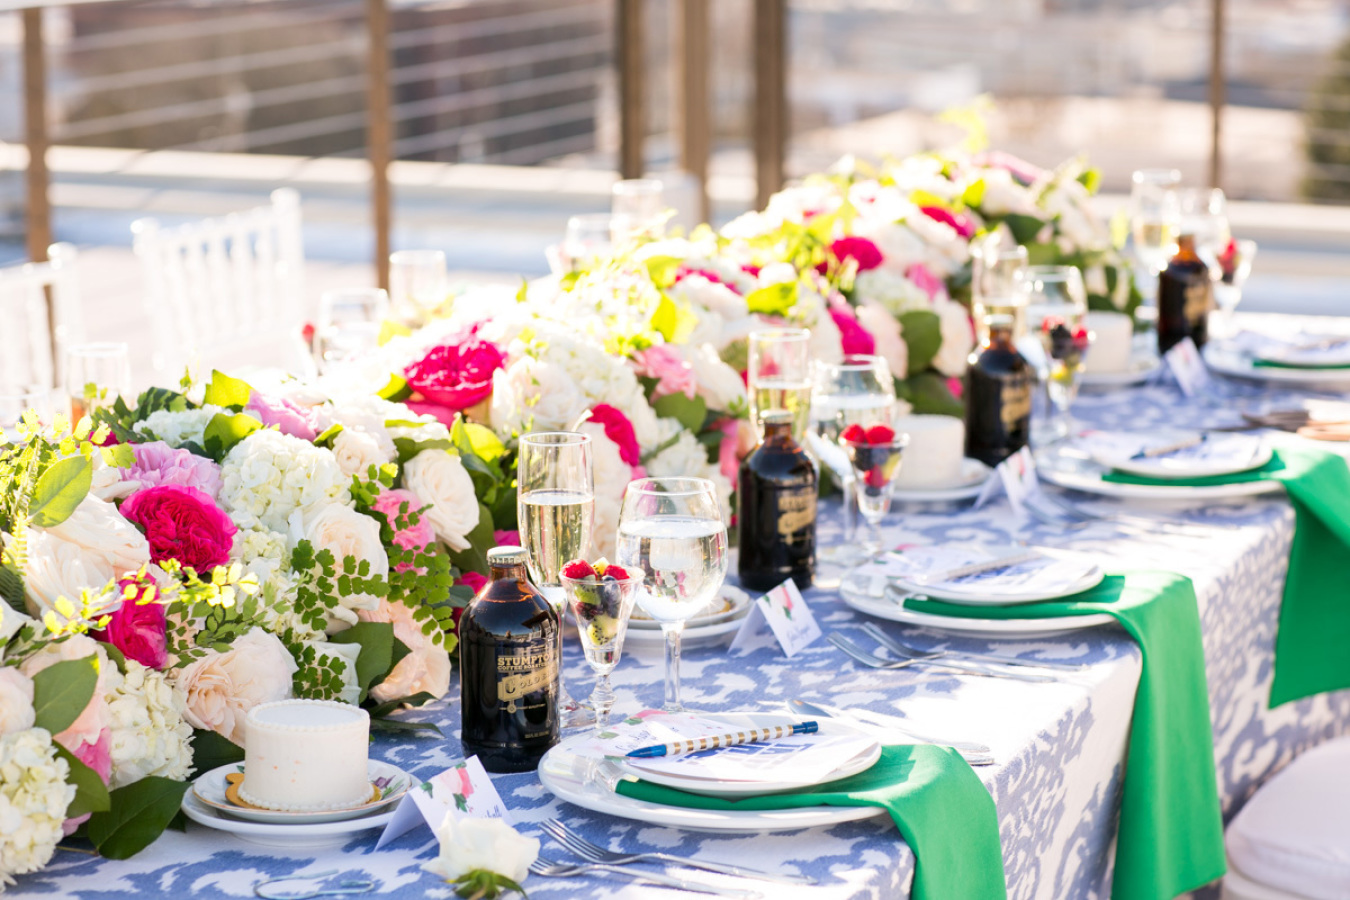 The best La Tavola tables on A Savvy Lifestyle [Bridal Bliss & A Lovely Day]